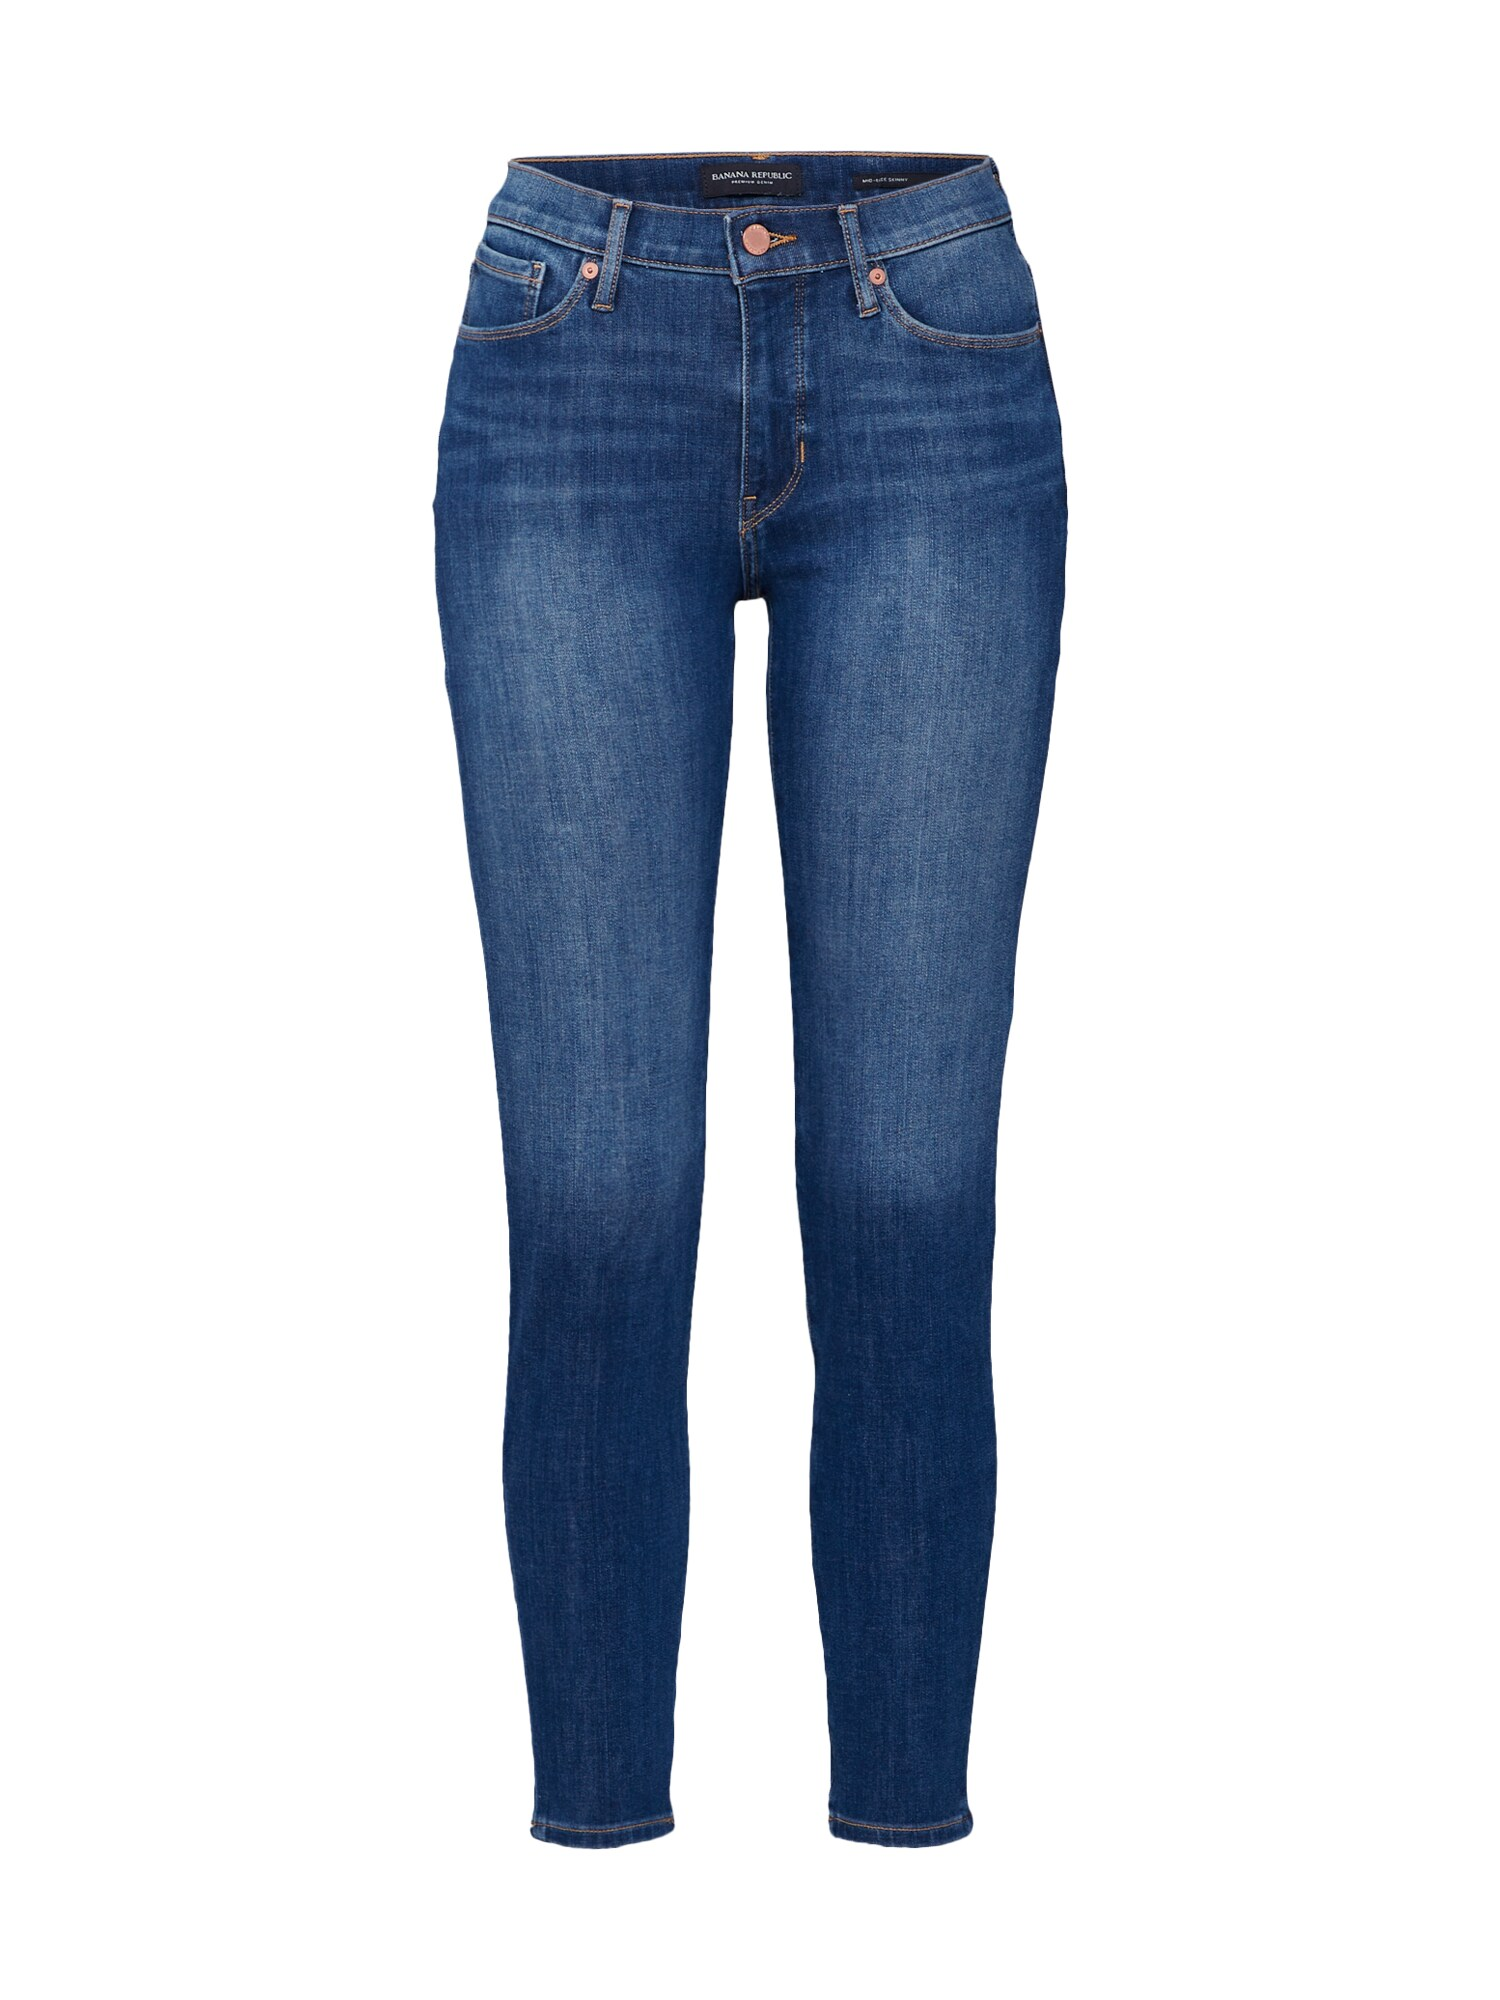 Džíny MR SKINNY BISTRETCH indigo Banana Republic